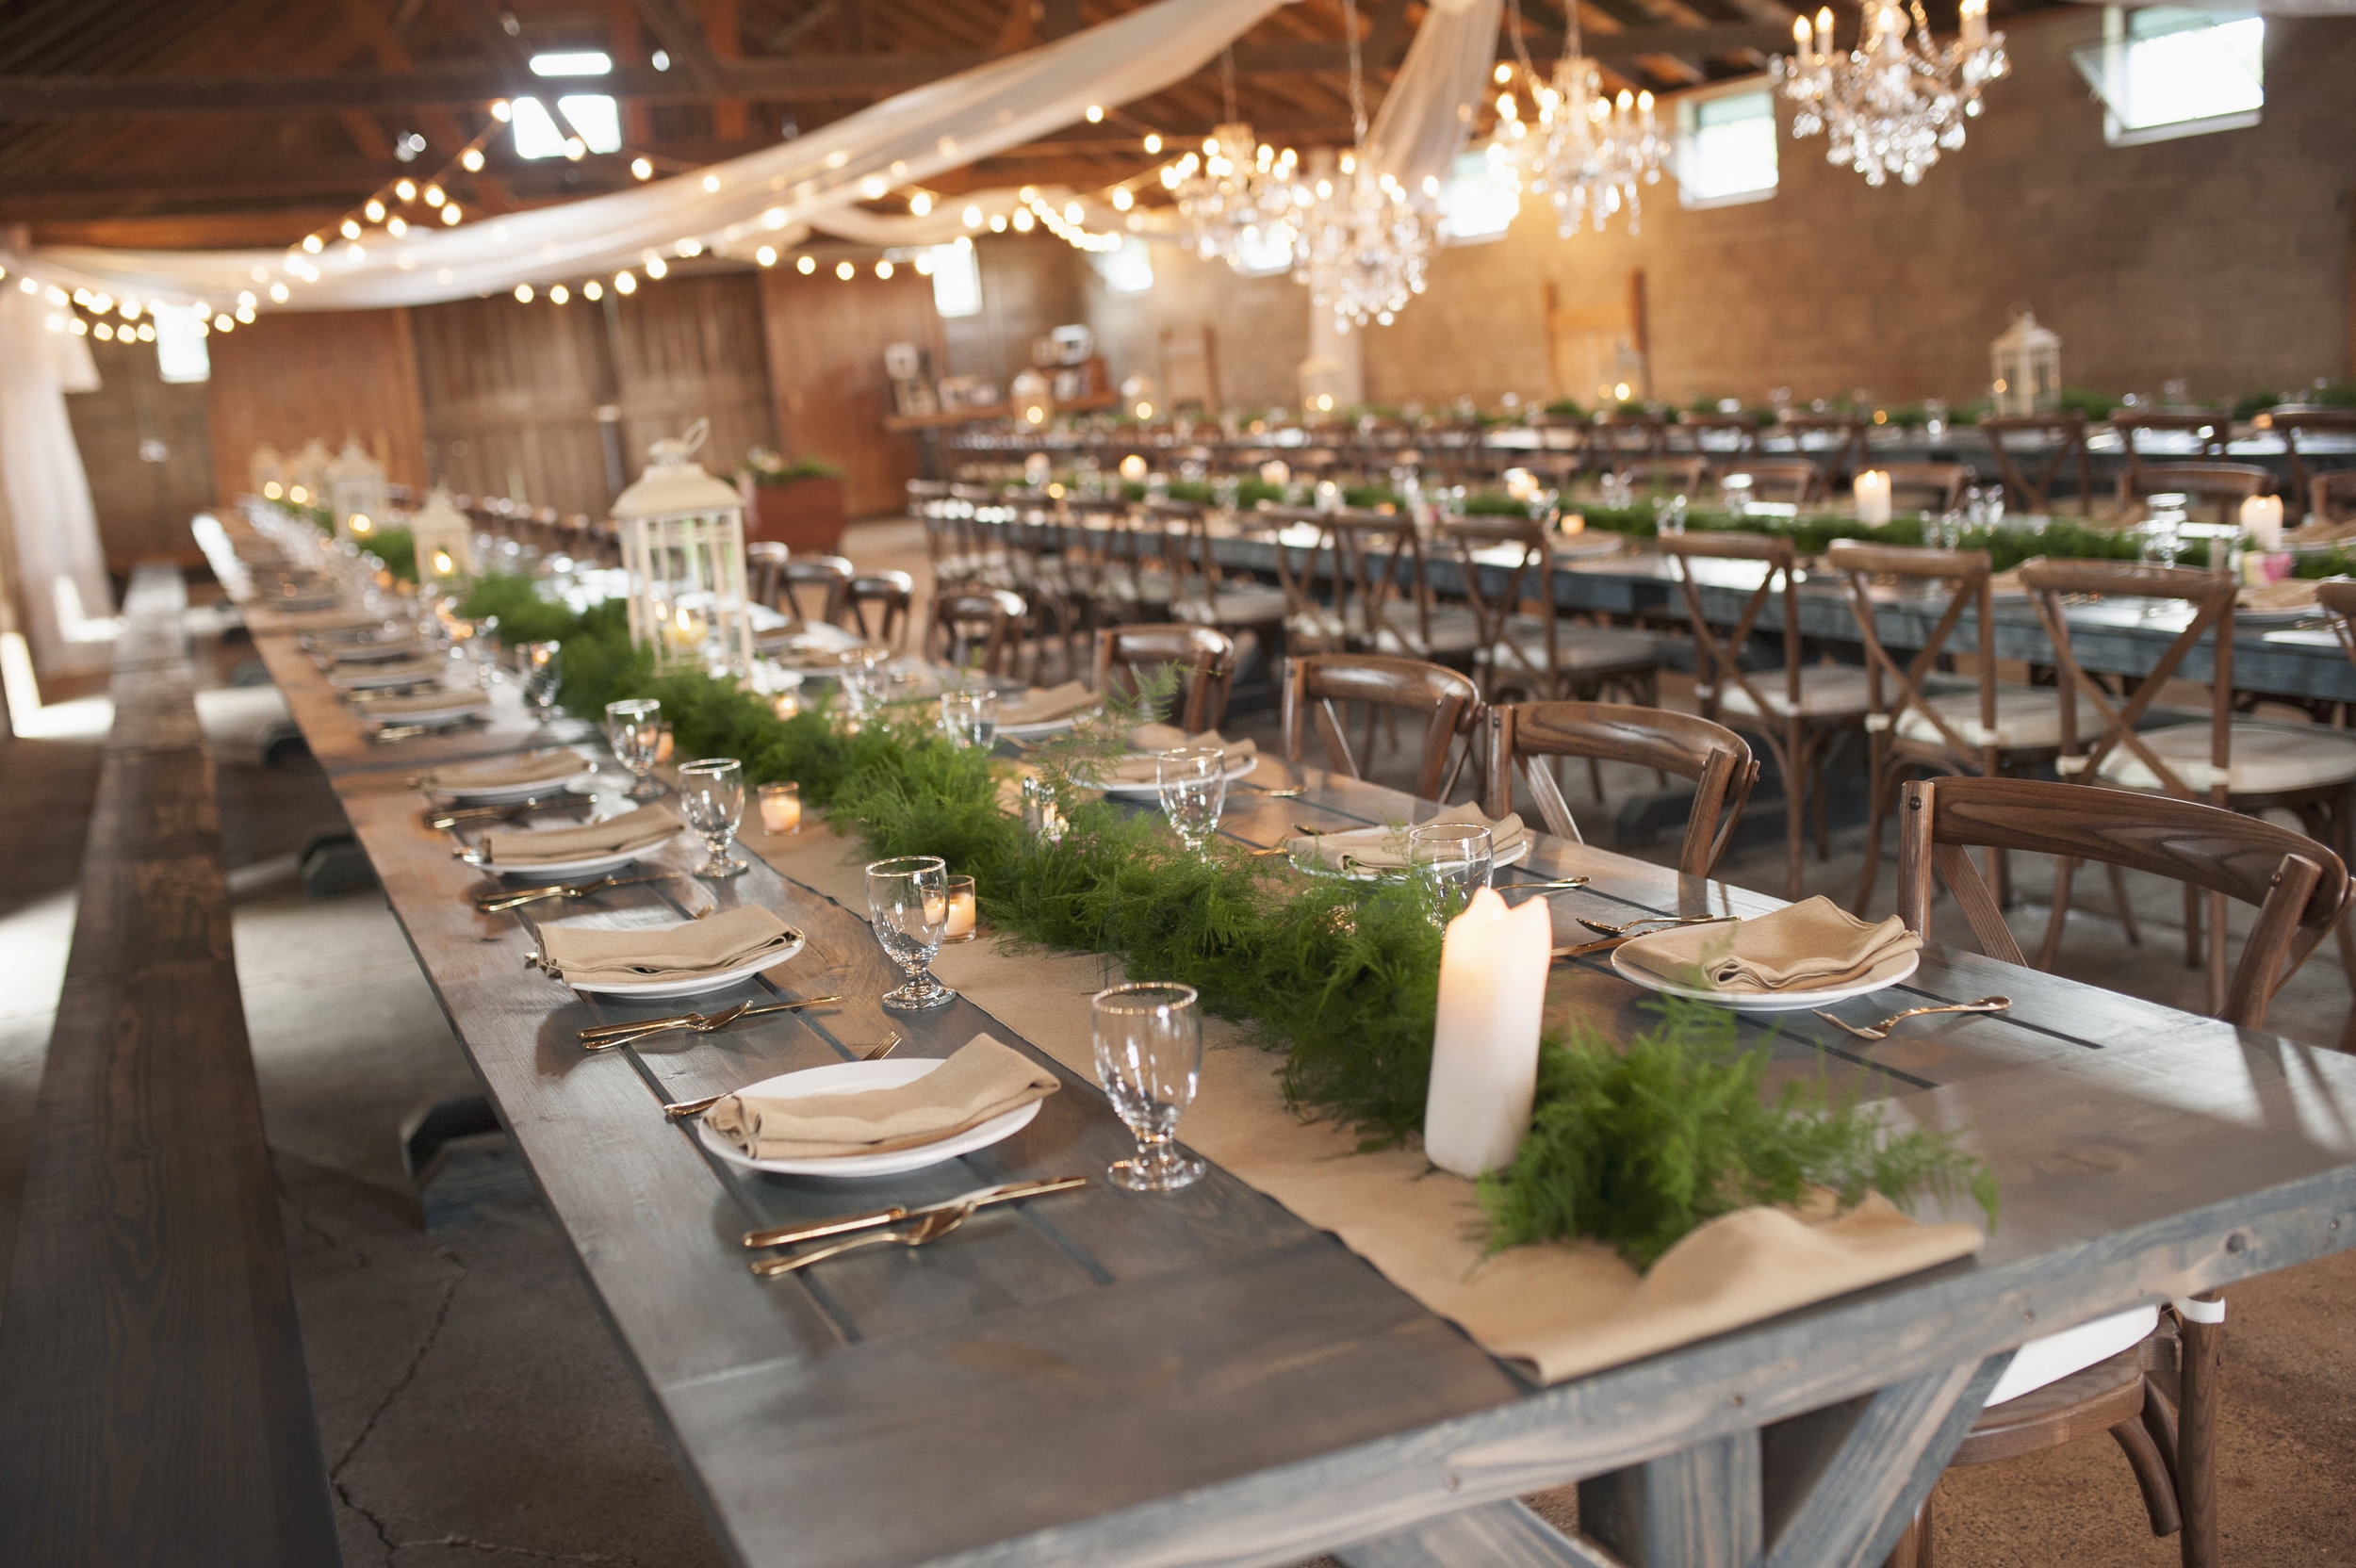 The Blue Barn at Lake Max Meadows accommodates up to 200 seated guest, providing ample space with rustic details of the barn preserved.